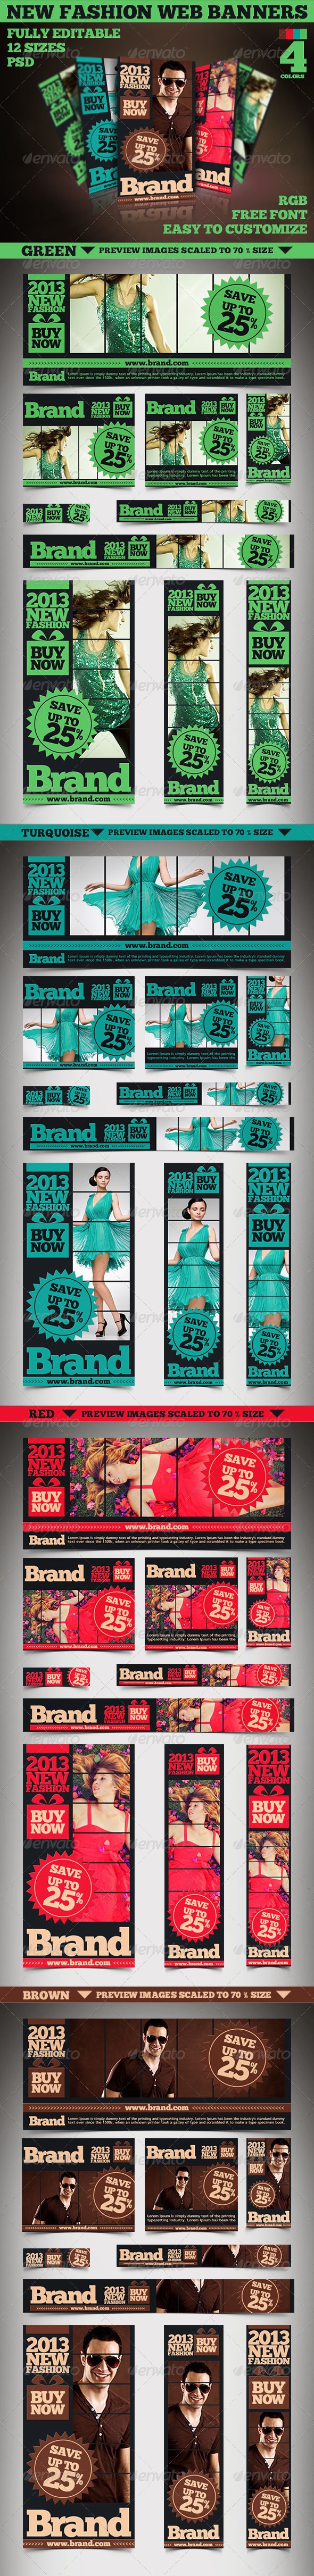 New Fashion Web Banners & Advertise - Banners & Ads Web Elements